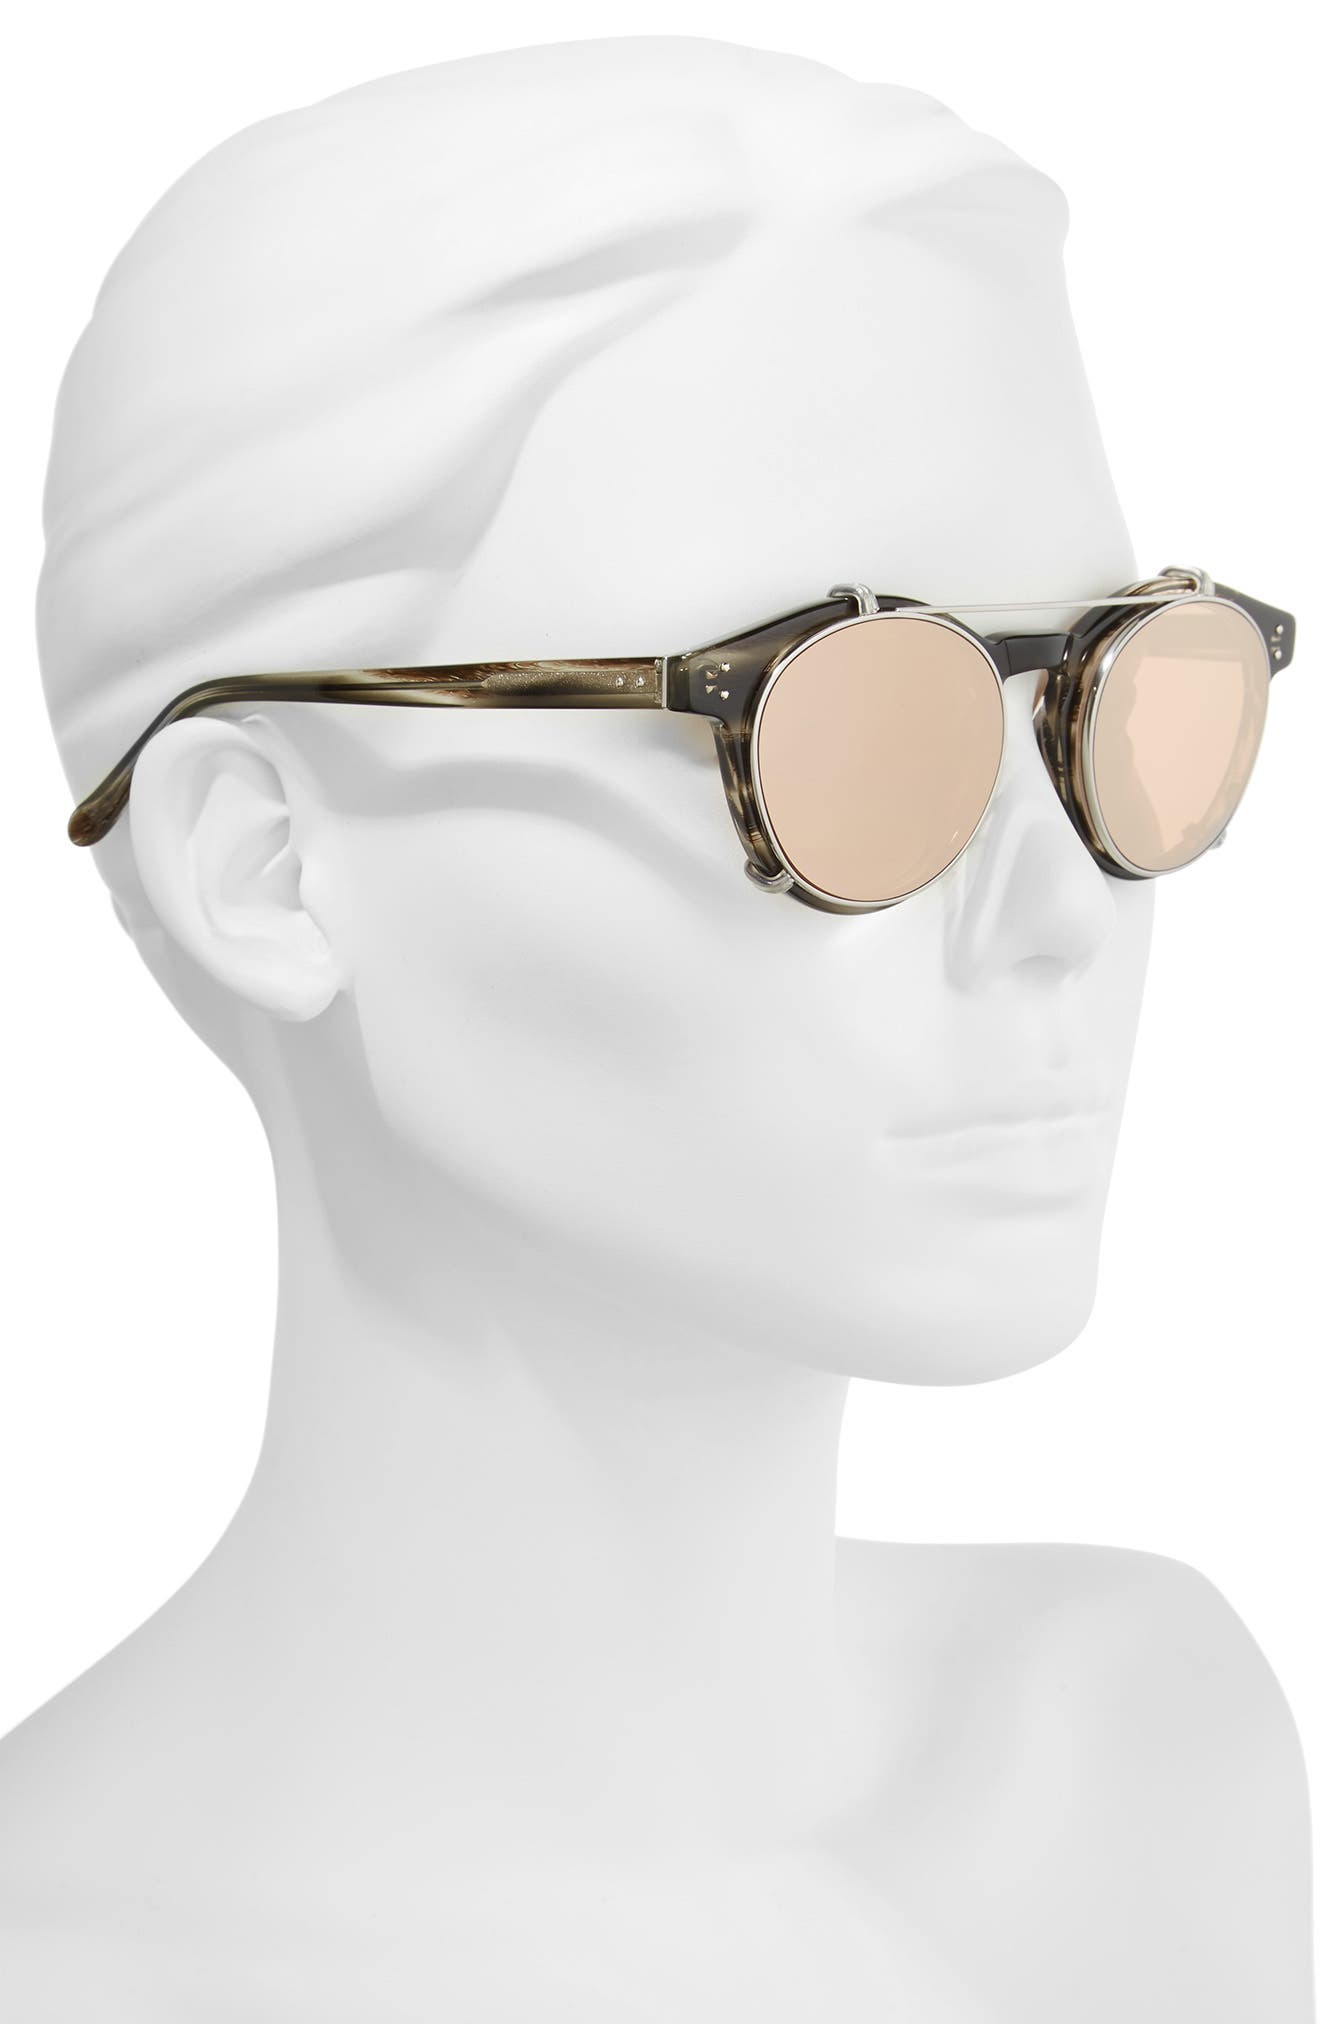 47mm Optical Glasses with Clip-On 18 Karat Rose Gold Trim Sunglasses,                             Alternate thumbnail 2, color,                             020